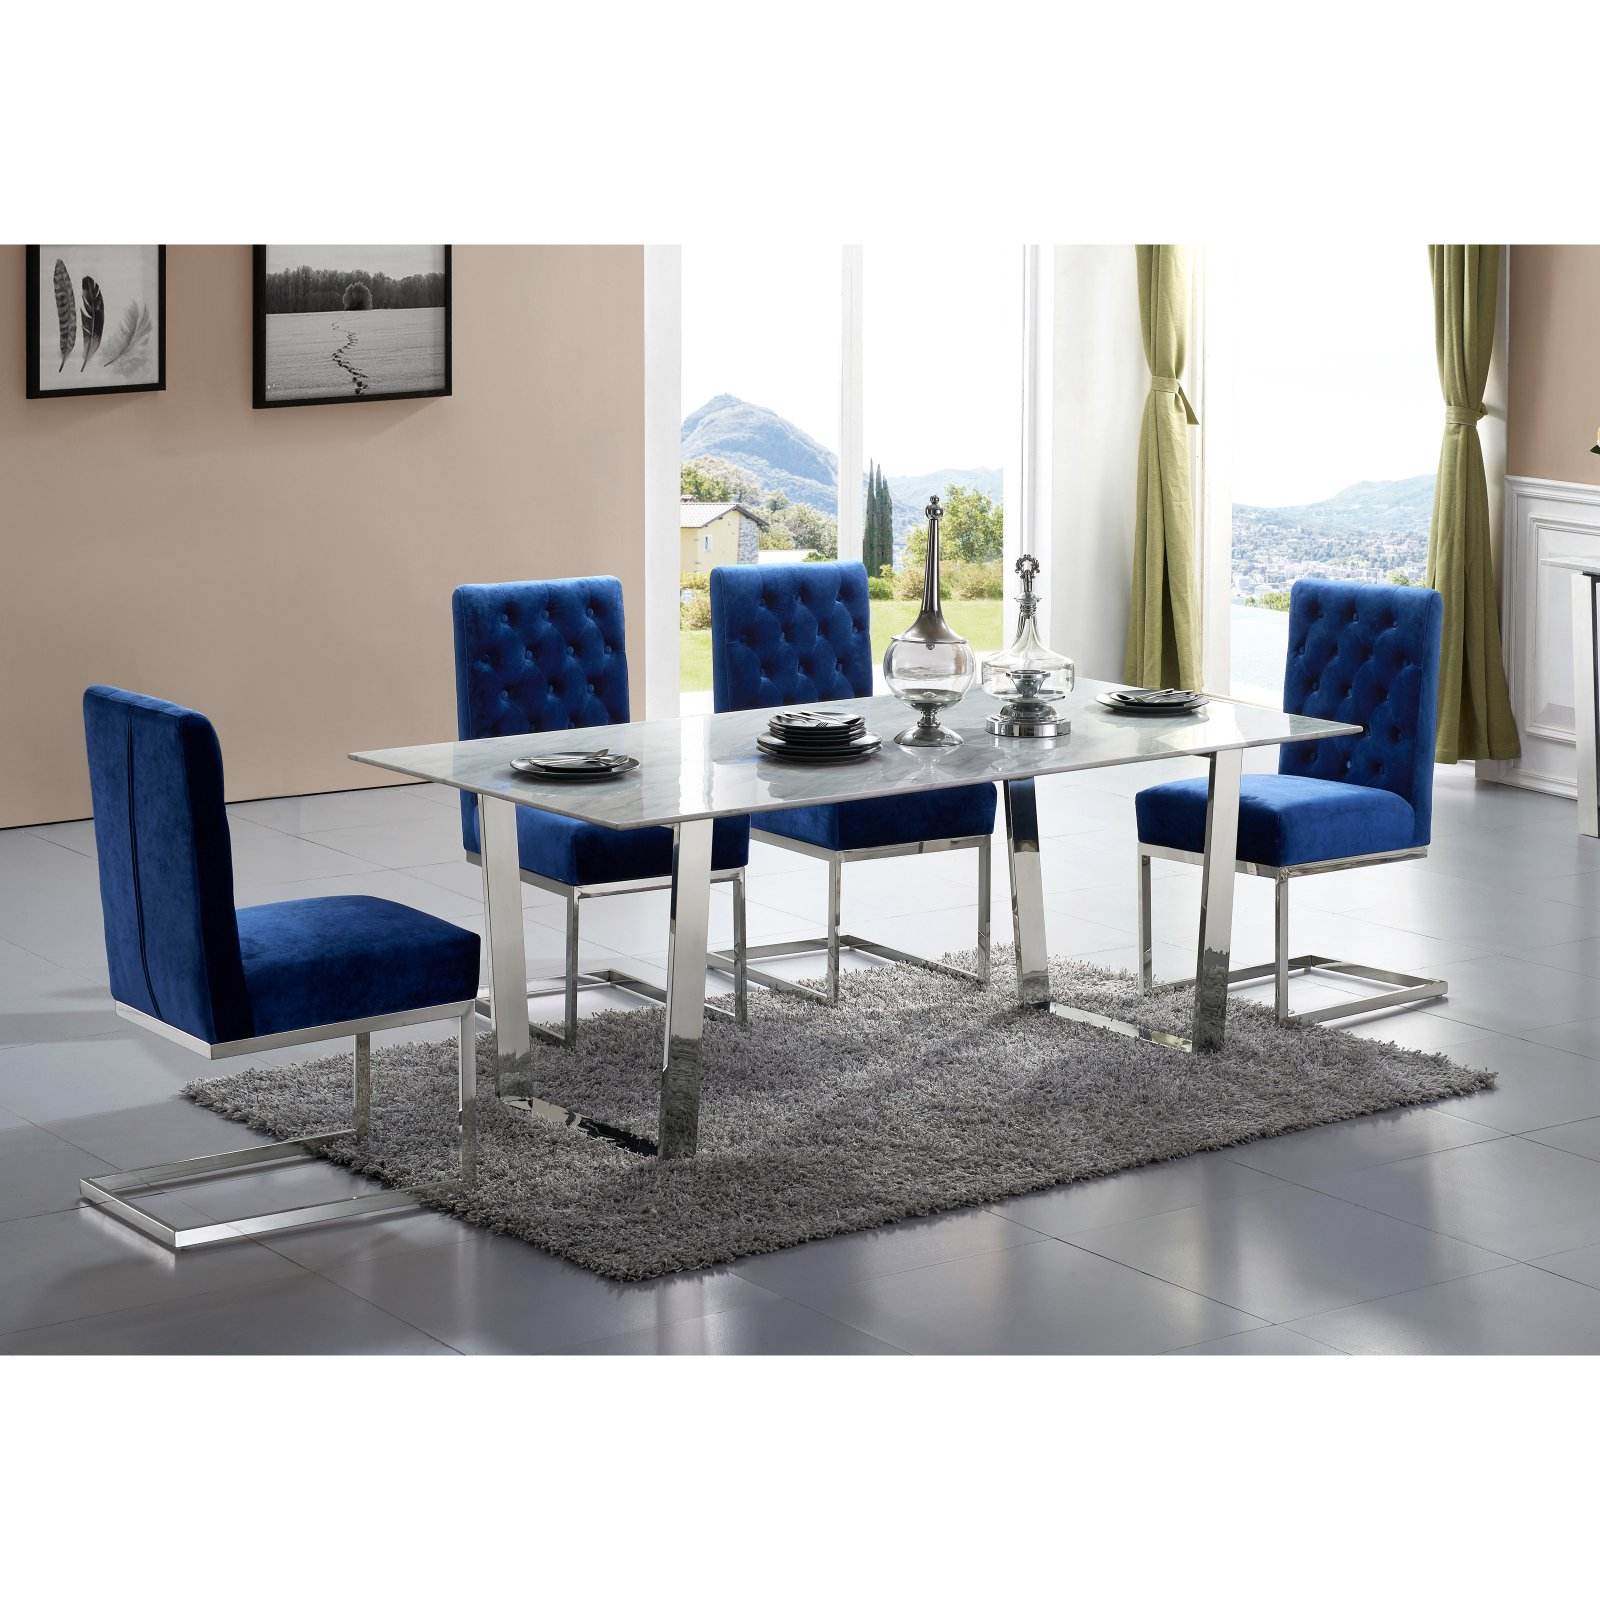 Meridian Furniture Inc Carlton Chrome Dining Table